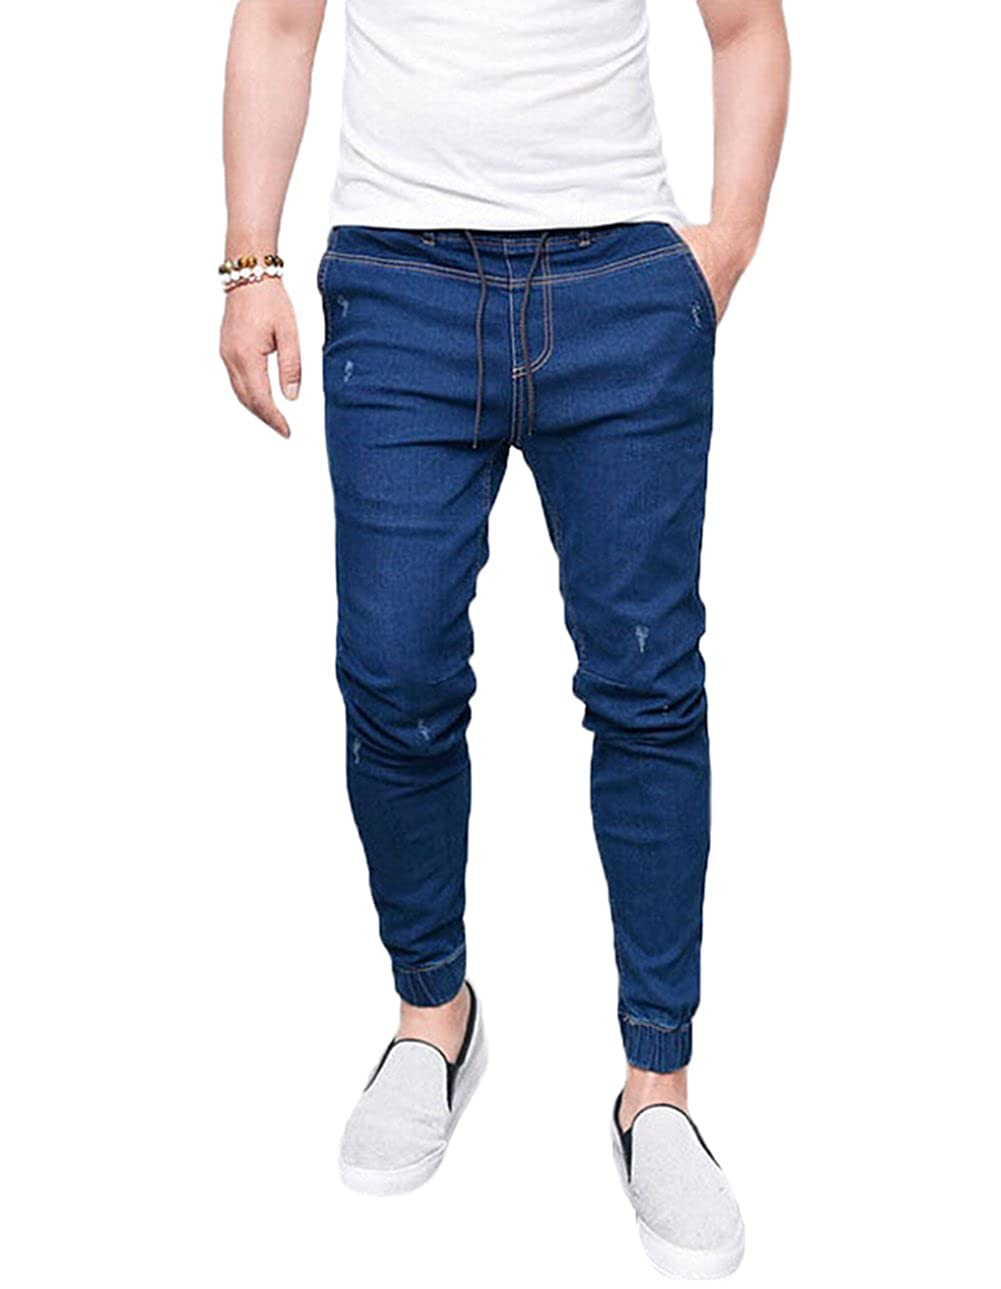 6f06fcaad Top 10 wholesale Bodybuilding Jeans That Fit - Chinabrands.com